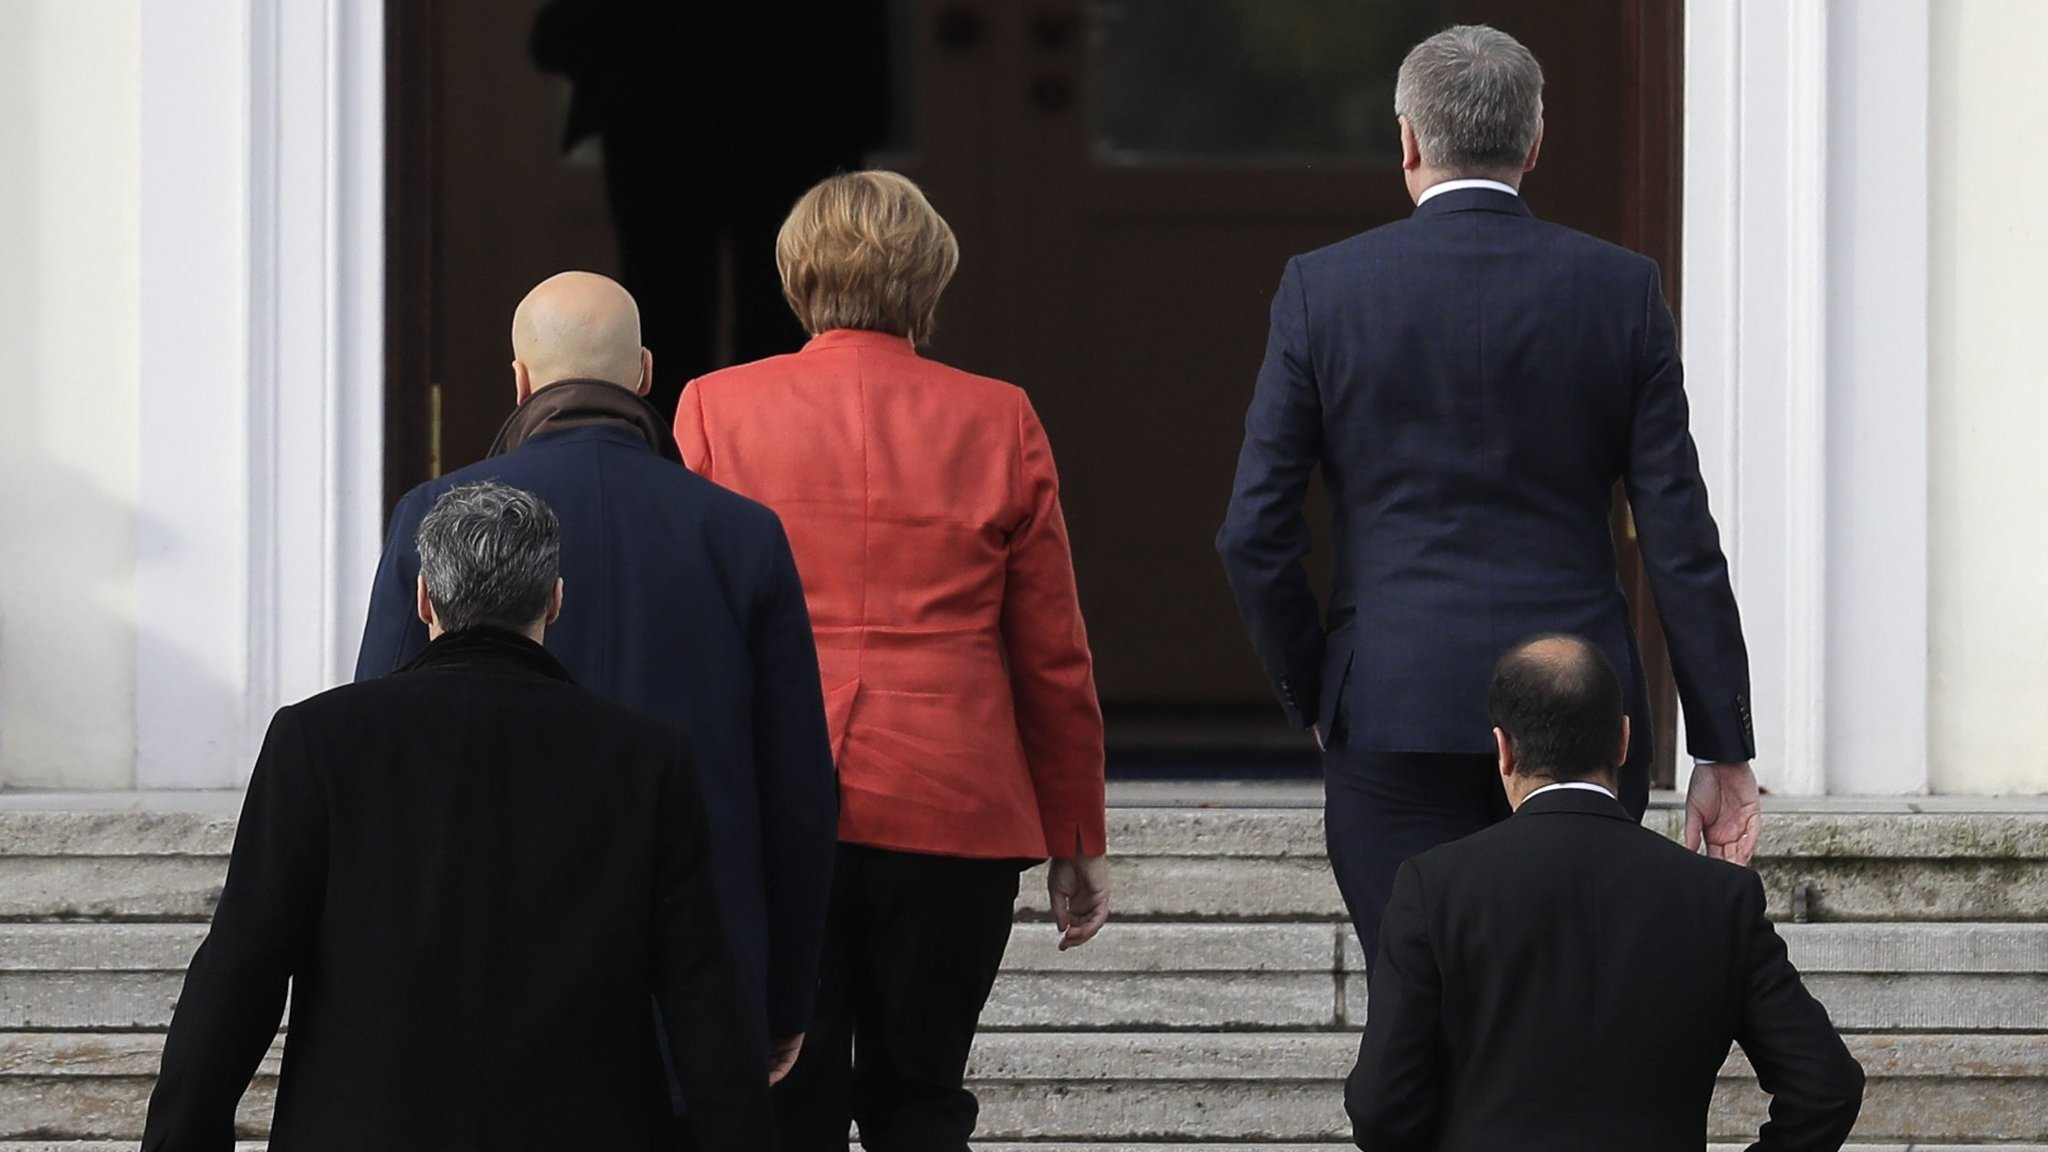 Angela Merkel faces worst political crisis of her career